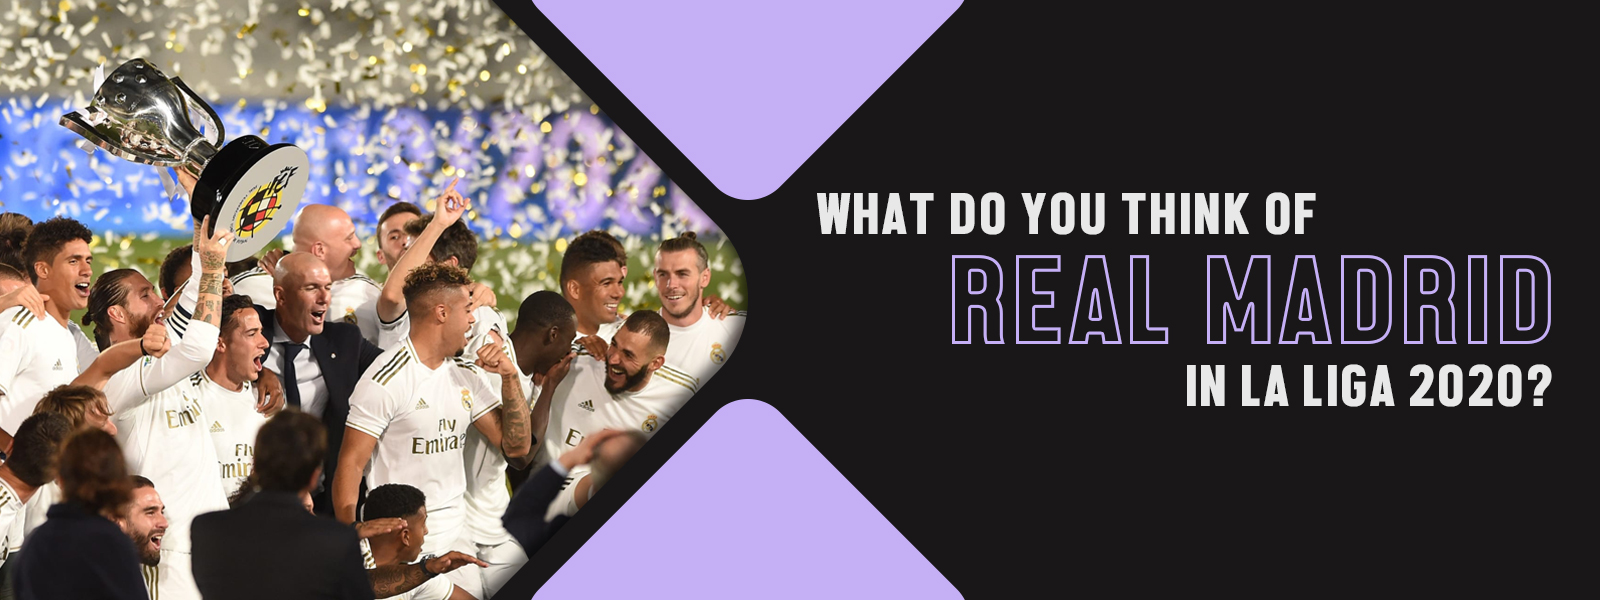 What Do You Think Of Real Madrid In La Liga 2020?